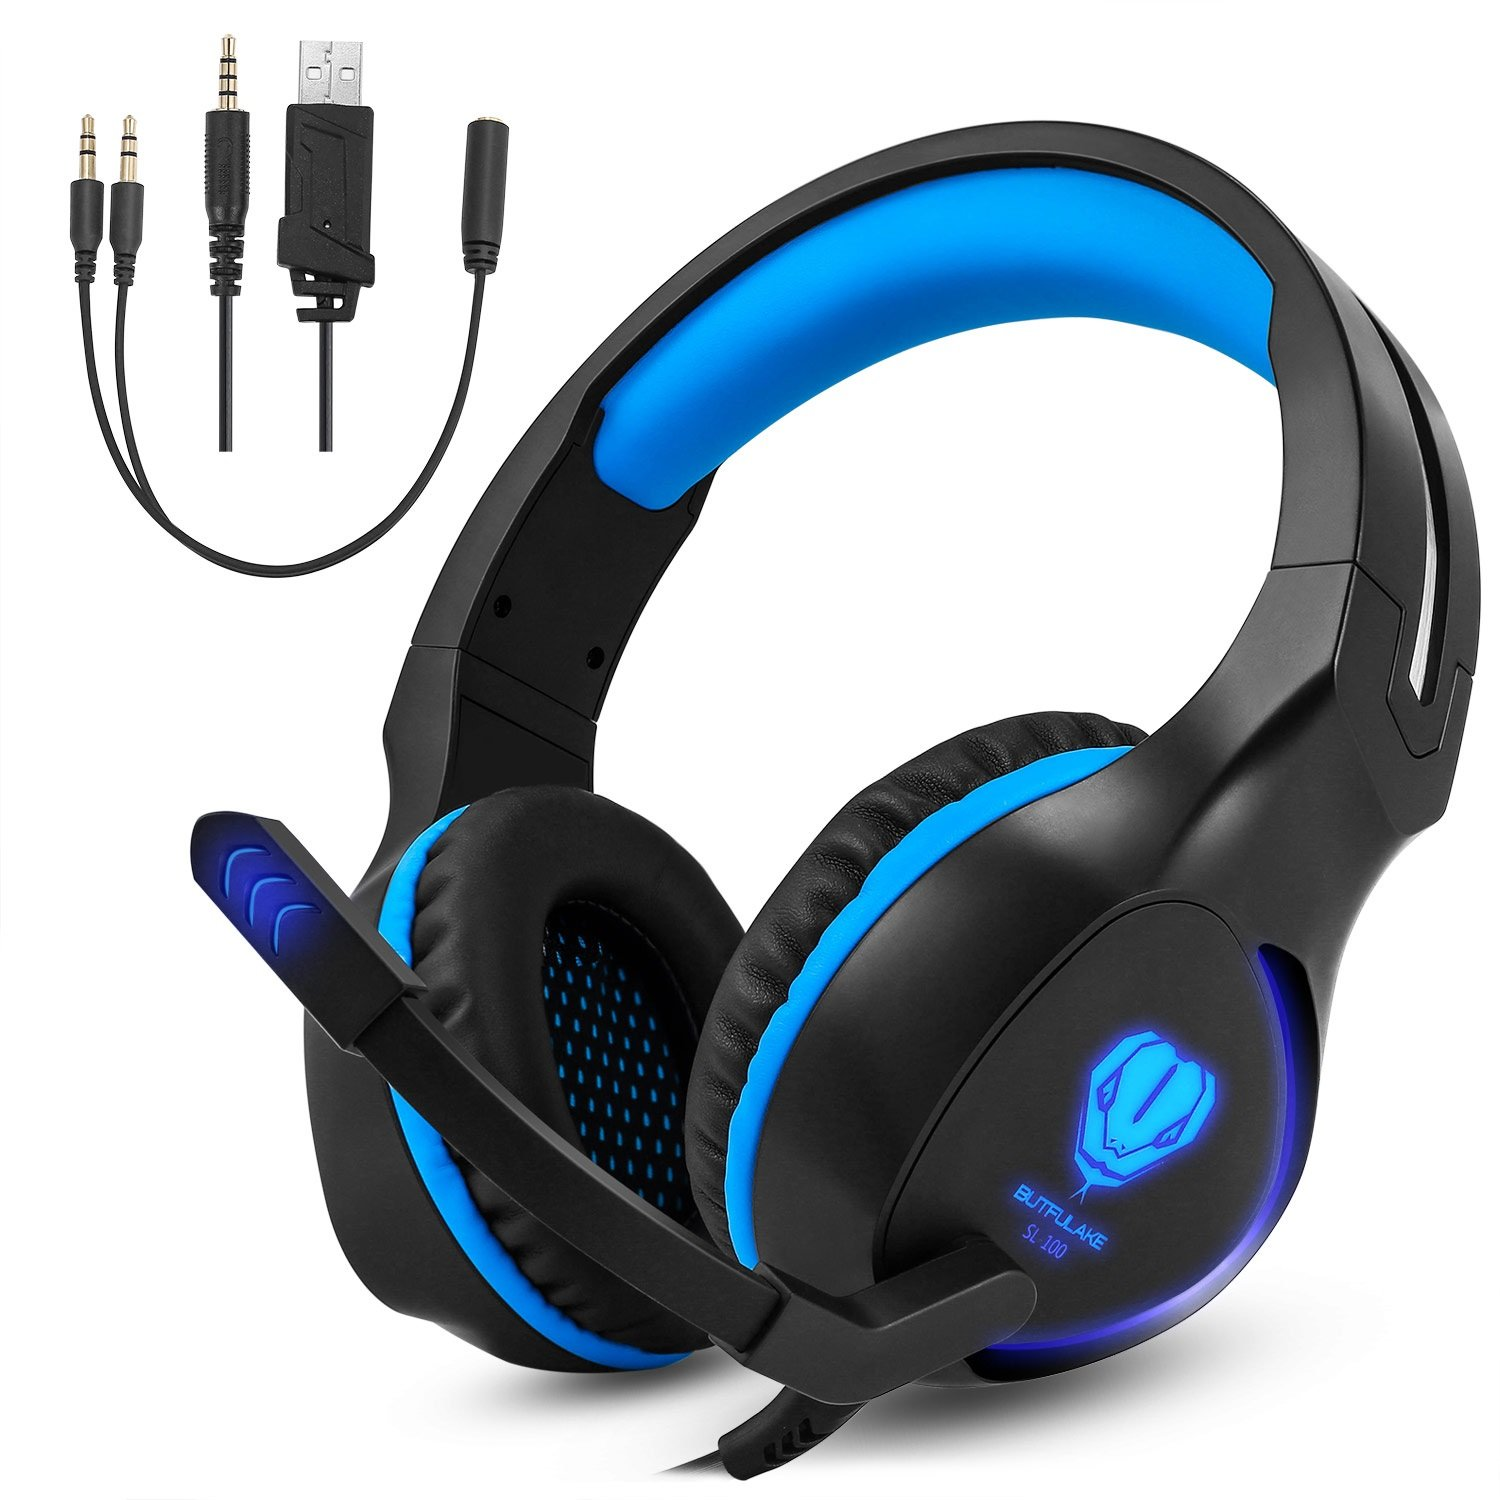 Megadream PS4 Over-Ear Stereo Gaming Headphone, 3.5mm Wired Headset Noise Cancelling with Mic LED Light for Xbox One, Xbox One S, Xbox One X, PS4, PS4 Pro, PS4 Slim Laptop Tablet Phone Black Blue